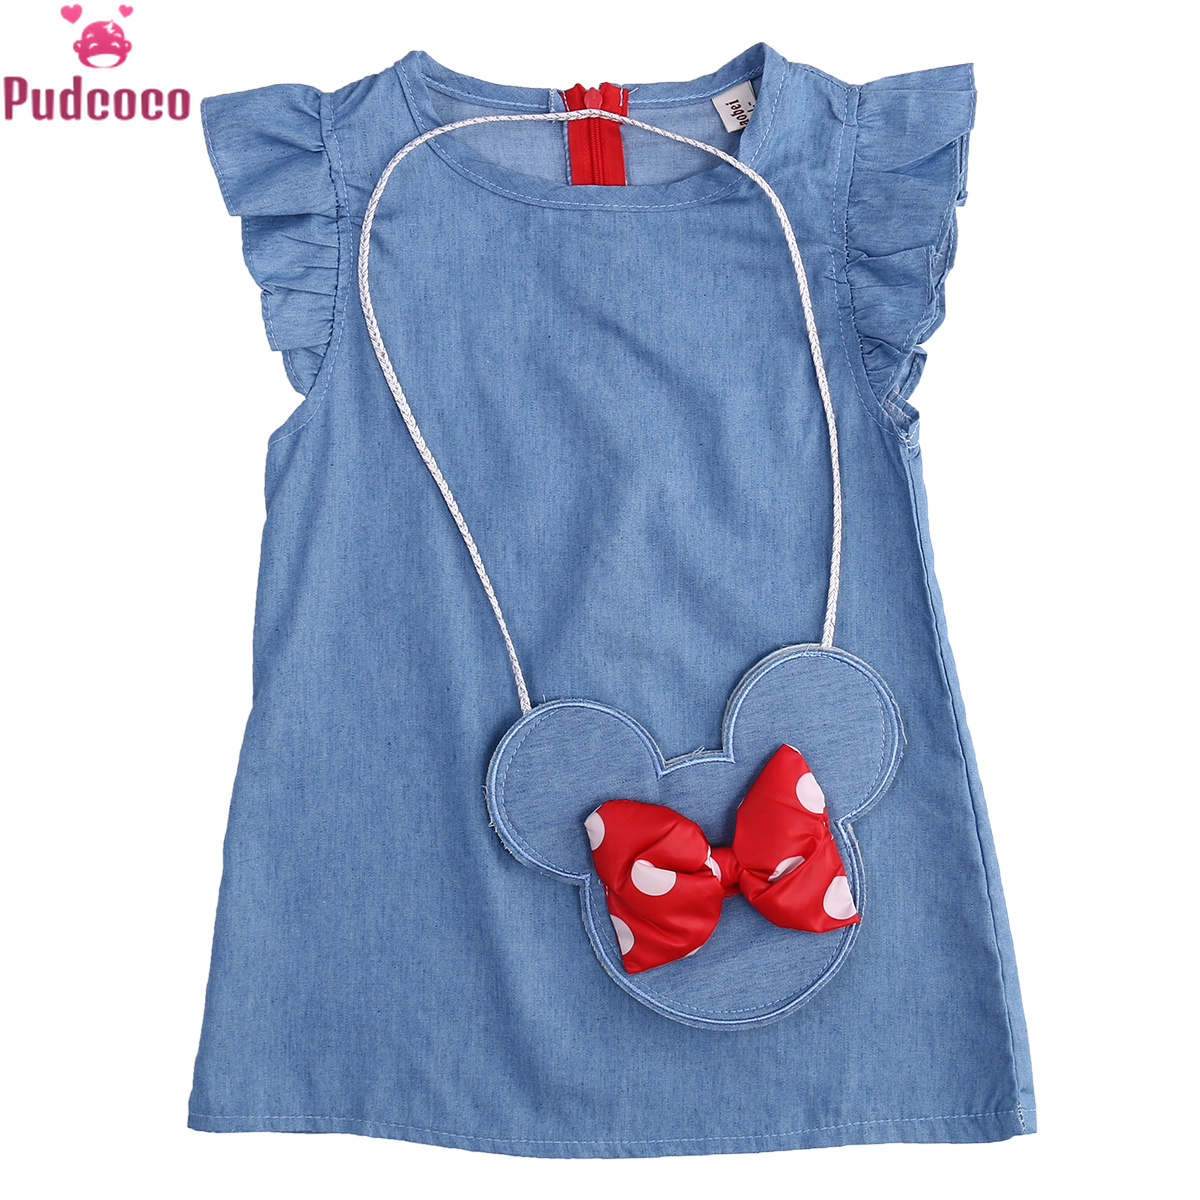 2-5 Year Toddler Kids Baby Girl Dress Sleeveless Minnie Mouse Bag Pattern Denim Party Dress Littler Girls Clothes